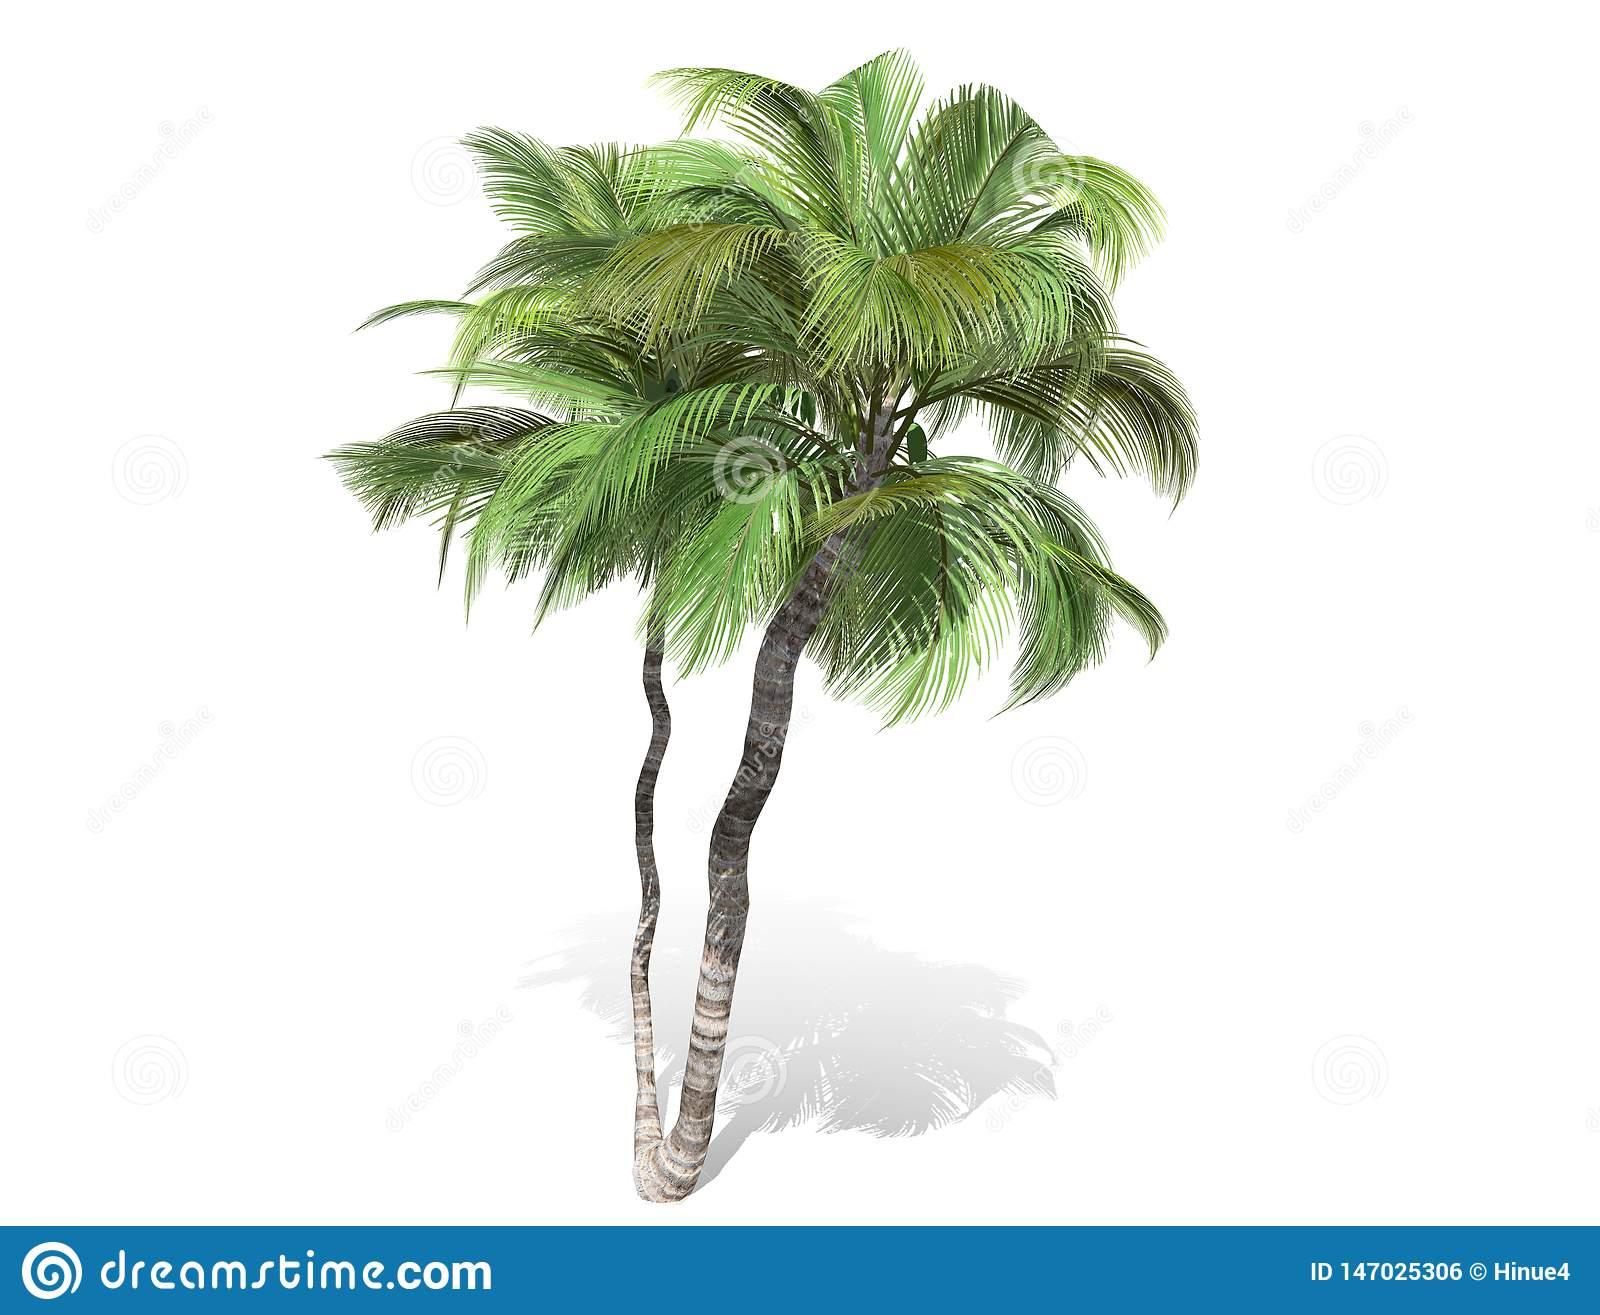 3D rendering - tall coconut trees isolated over a white background